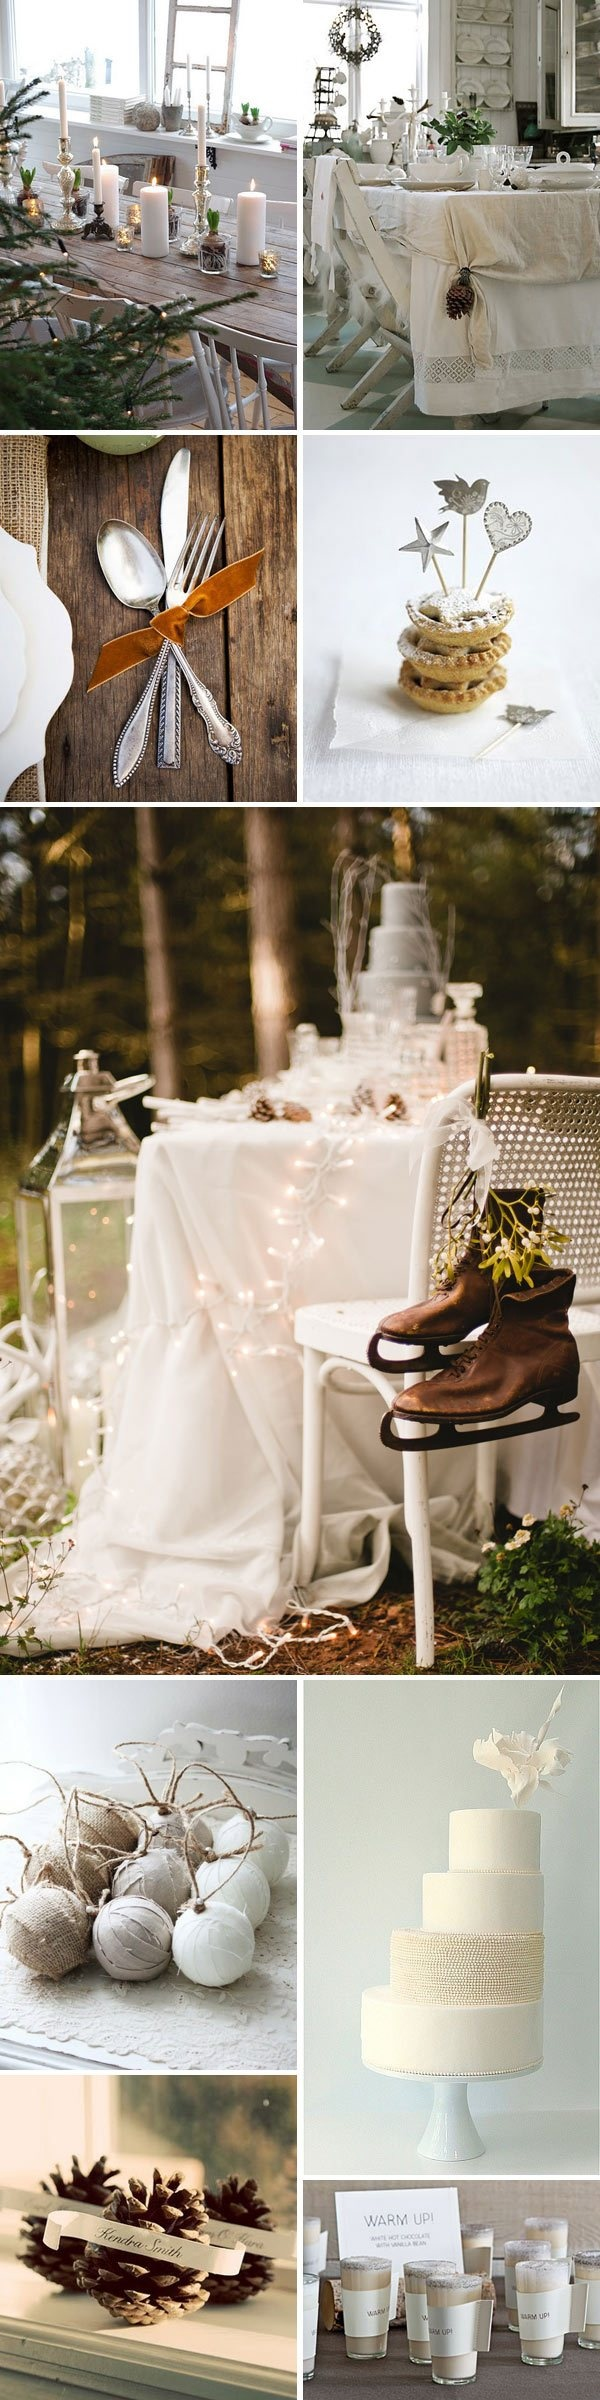 Eat, Drink And Be Merry, winter wedding